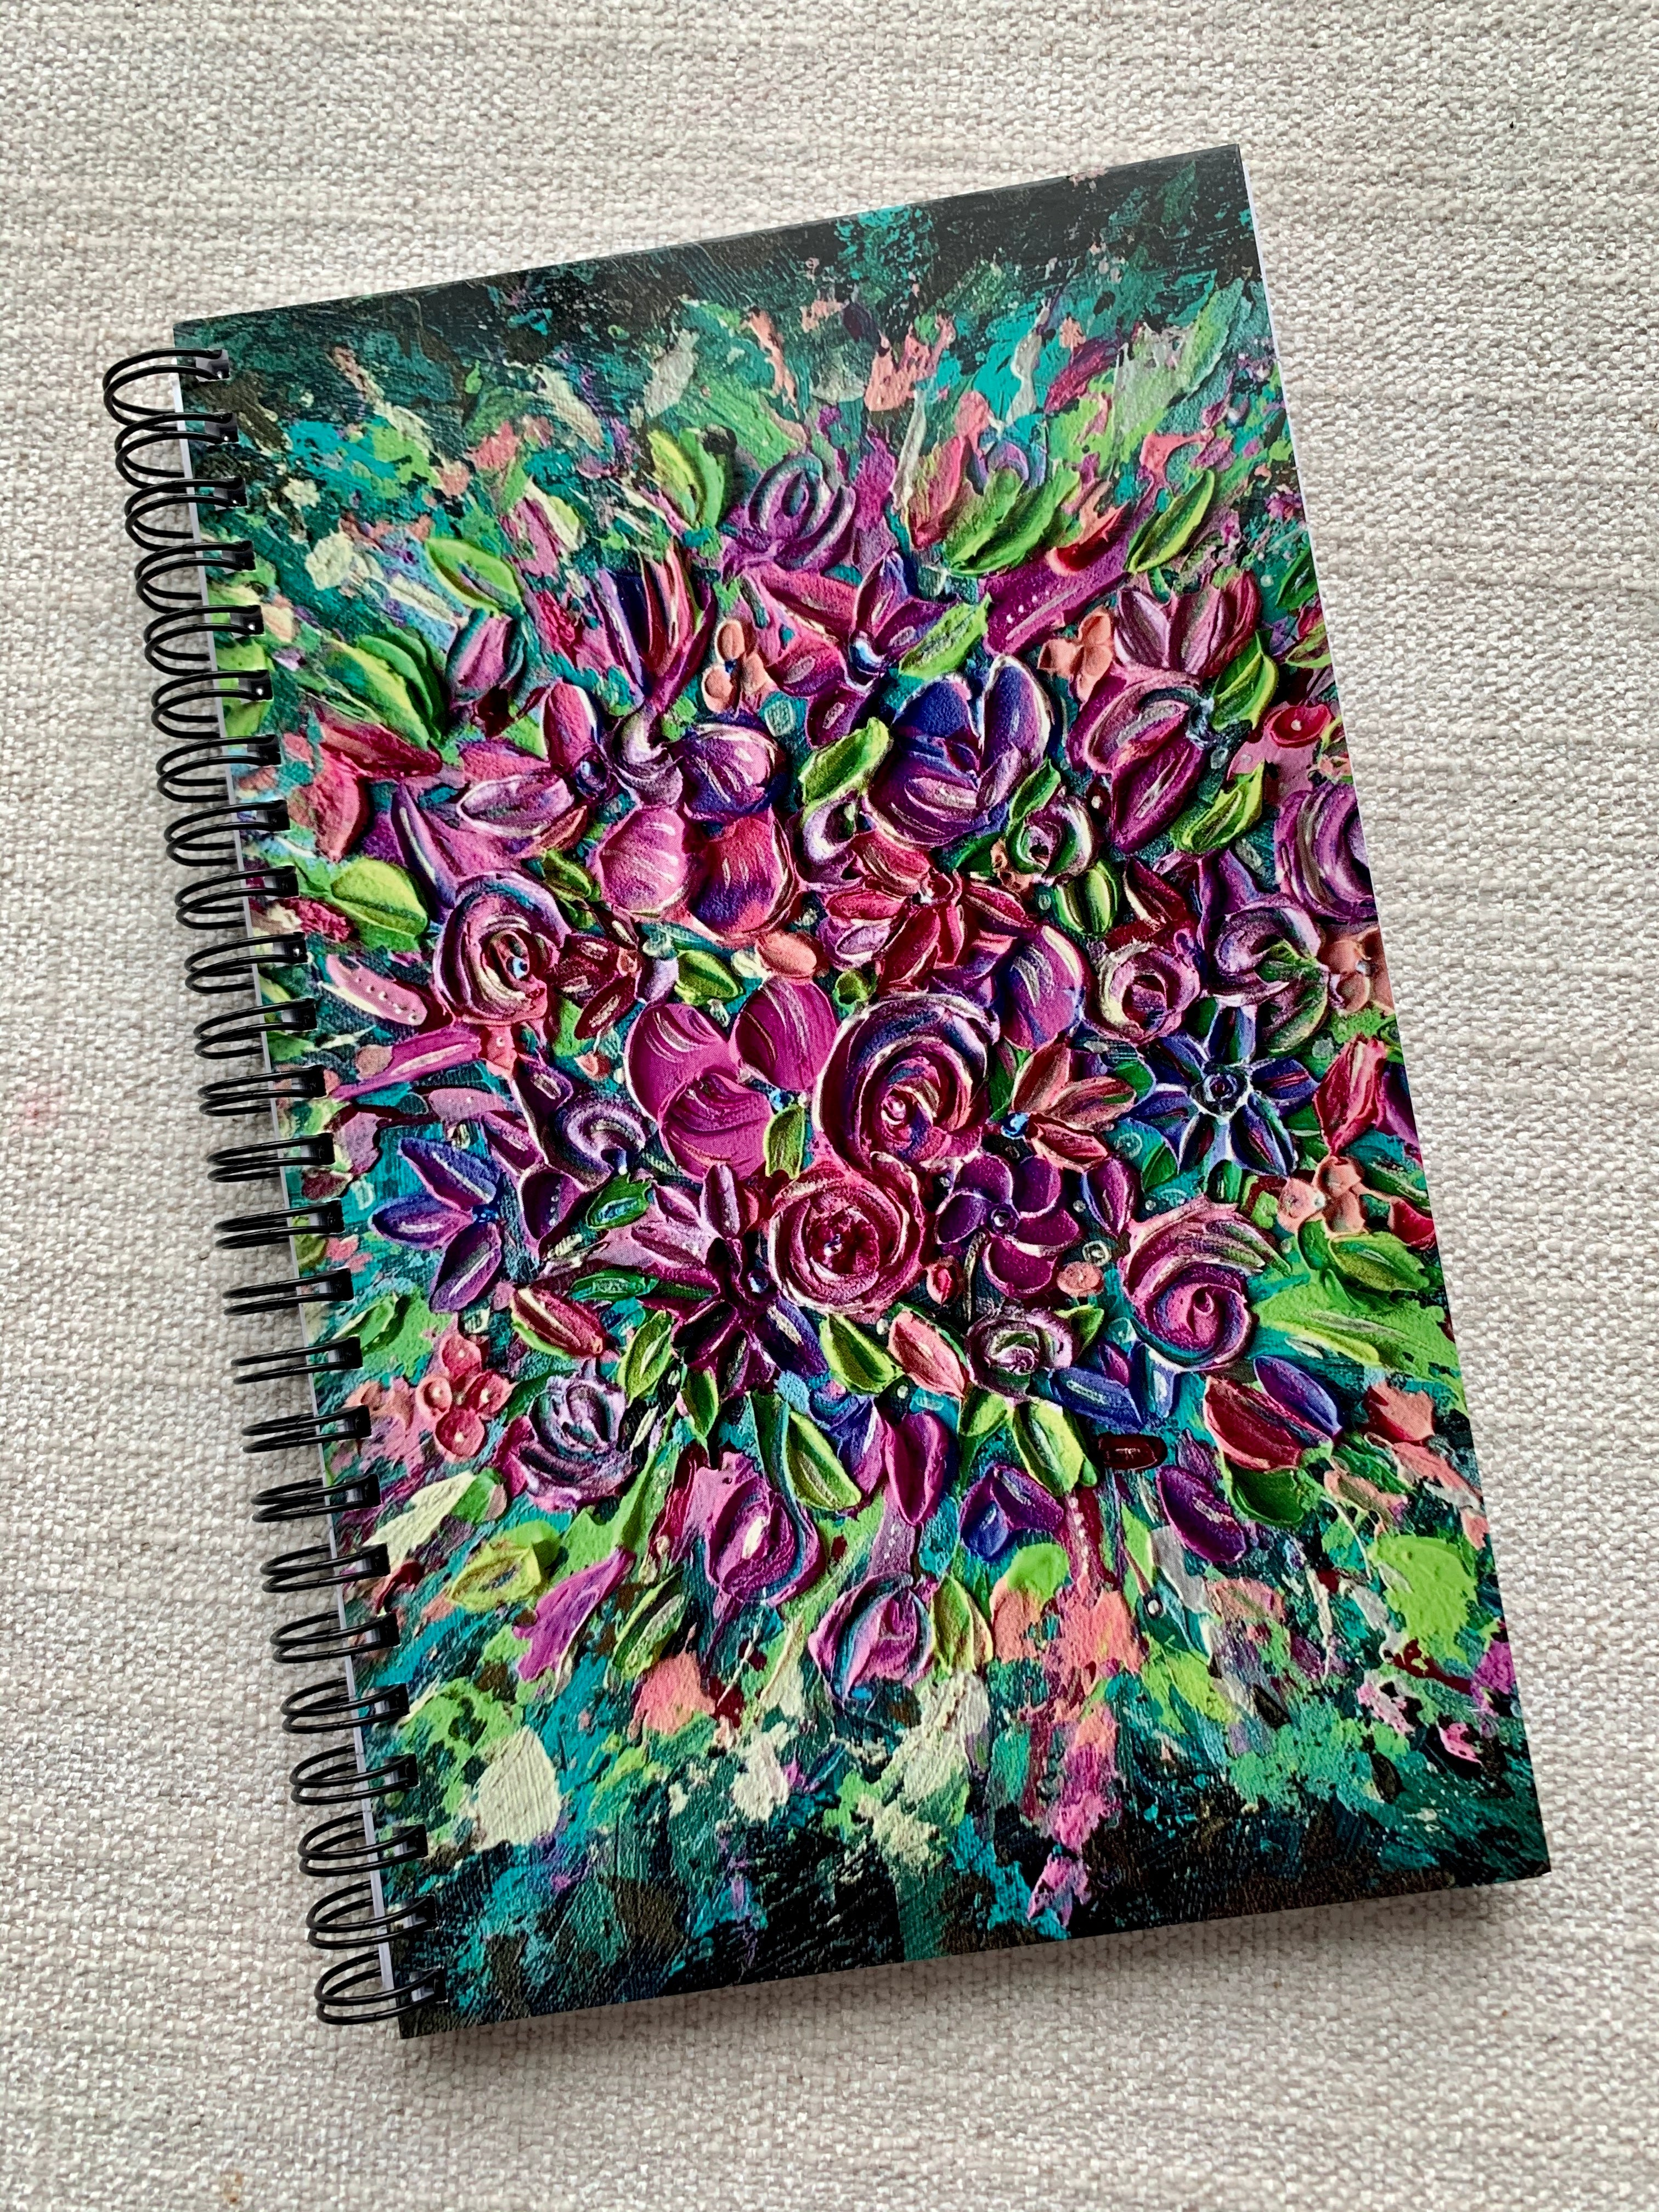 NEW! Notebook - Floral Explosion Lovers